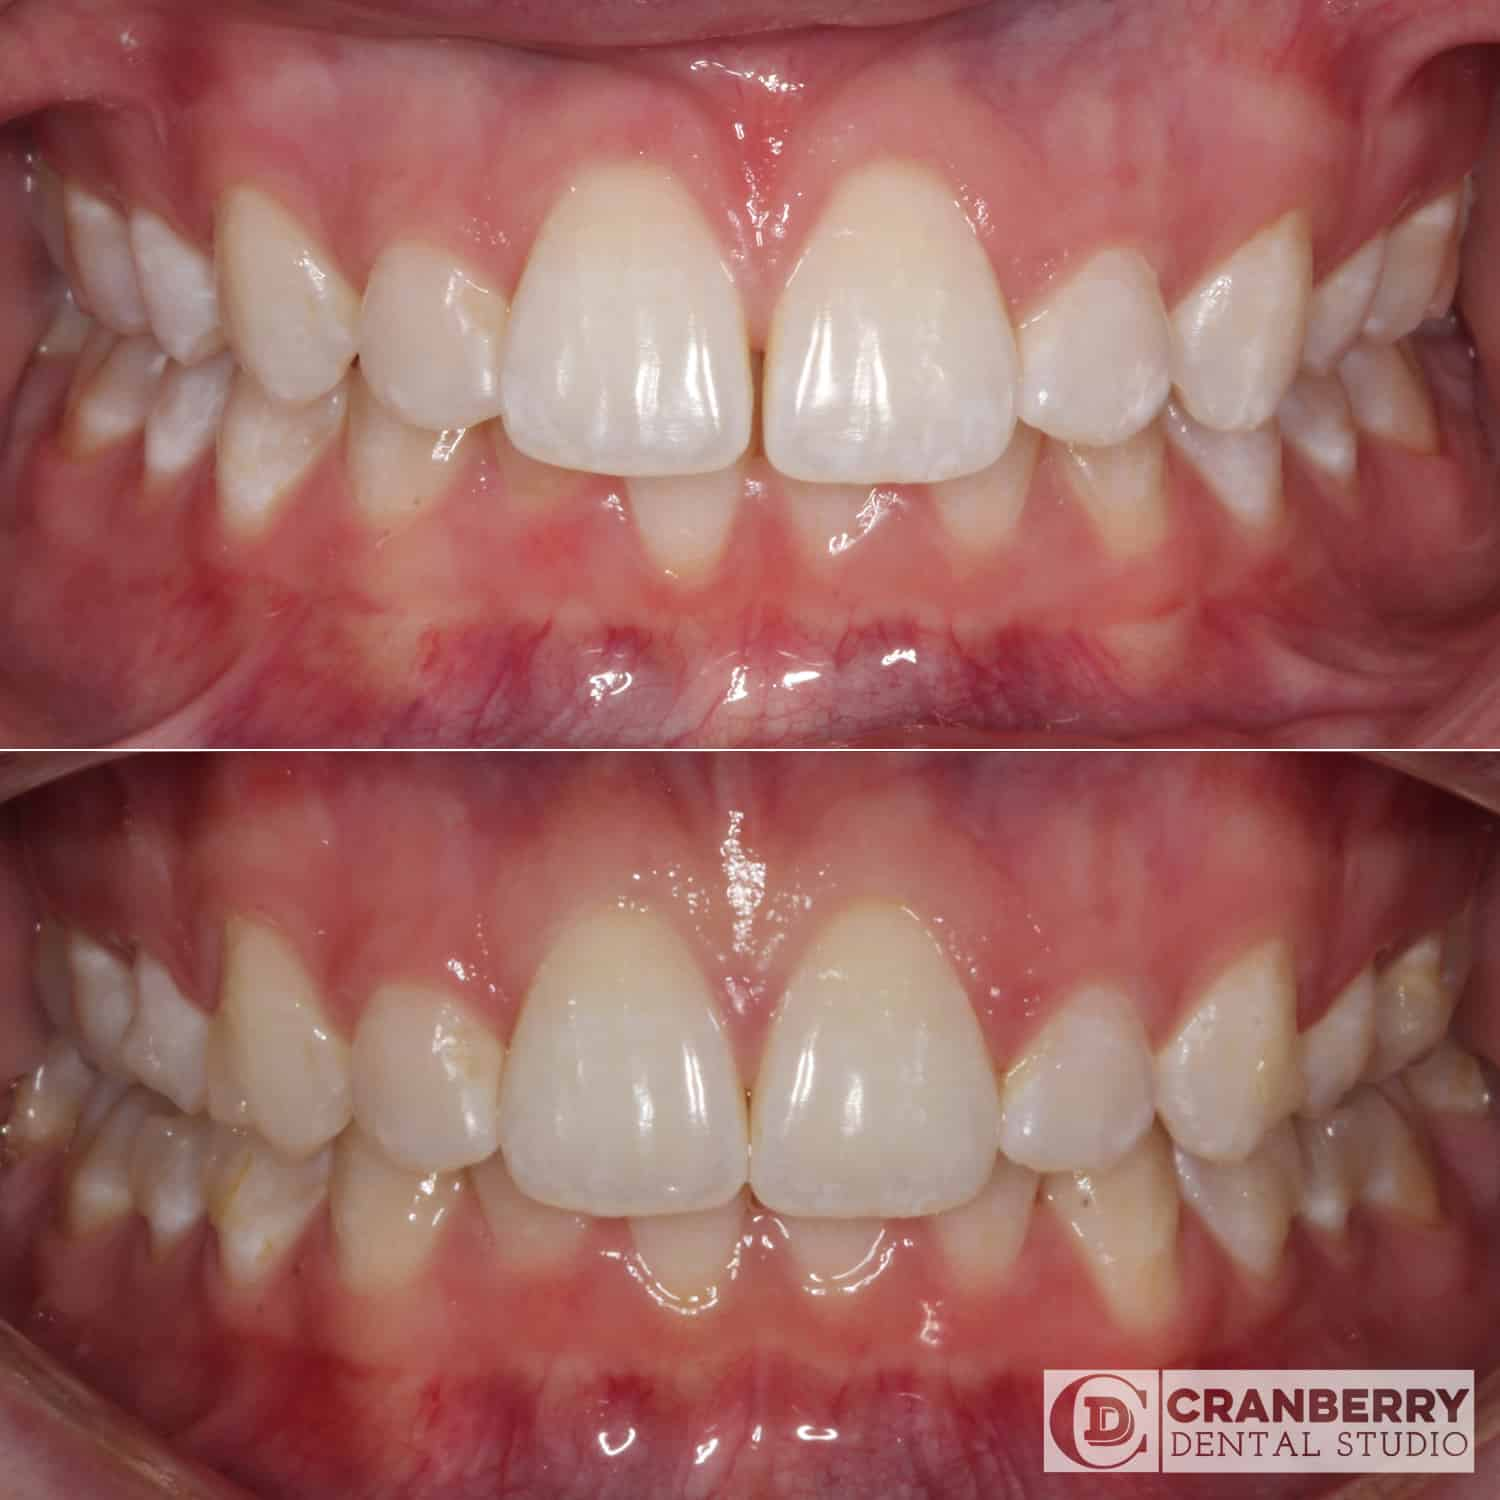 Invisalign treatment before and after by Cranberry Dental Studio